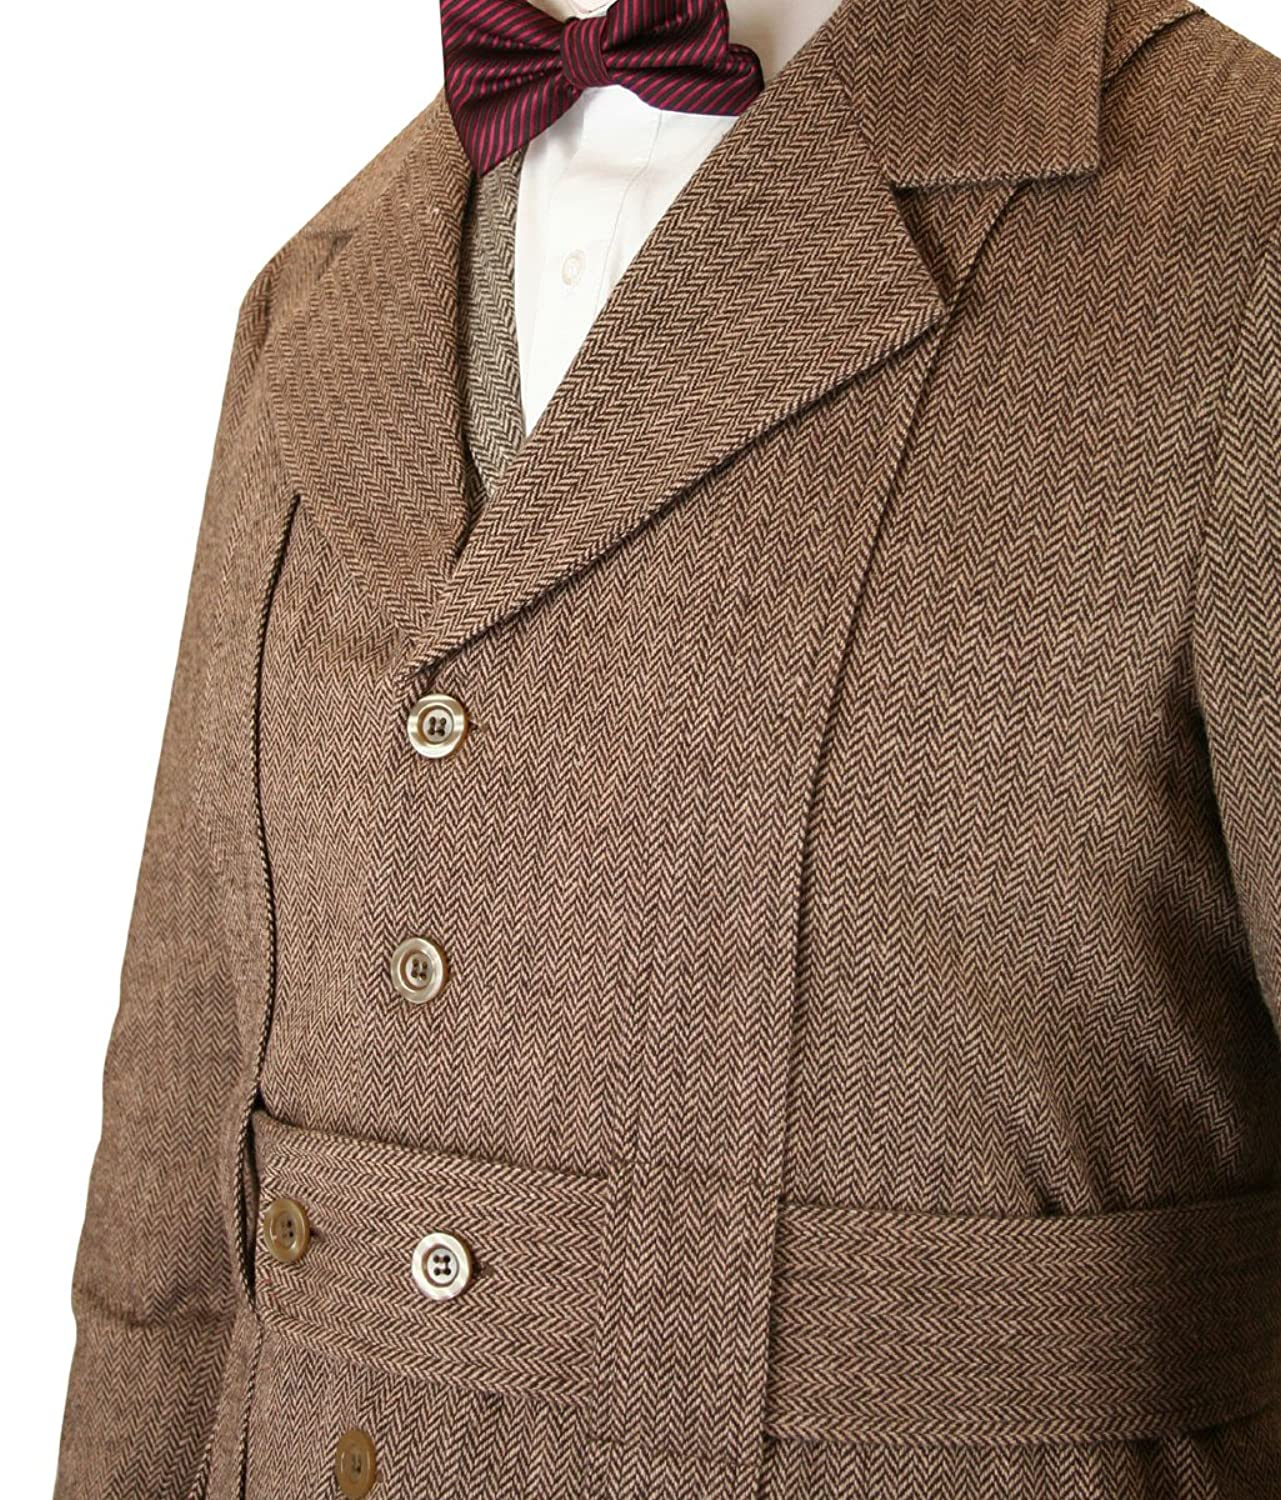 1920s Mens Coats & Jackets History Historical Emporium Mens Norfolk Wool Blend Herringbone Tweed Jacket $149.95 AT vintagedancer.com